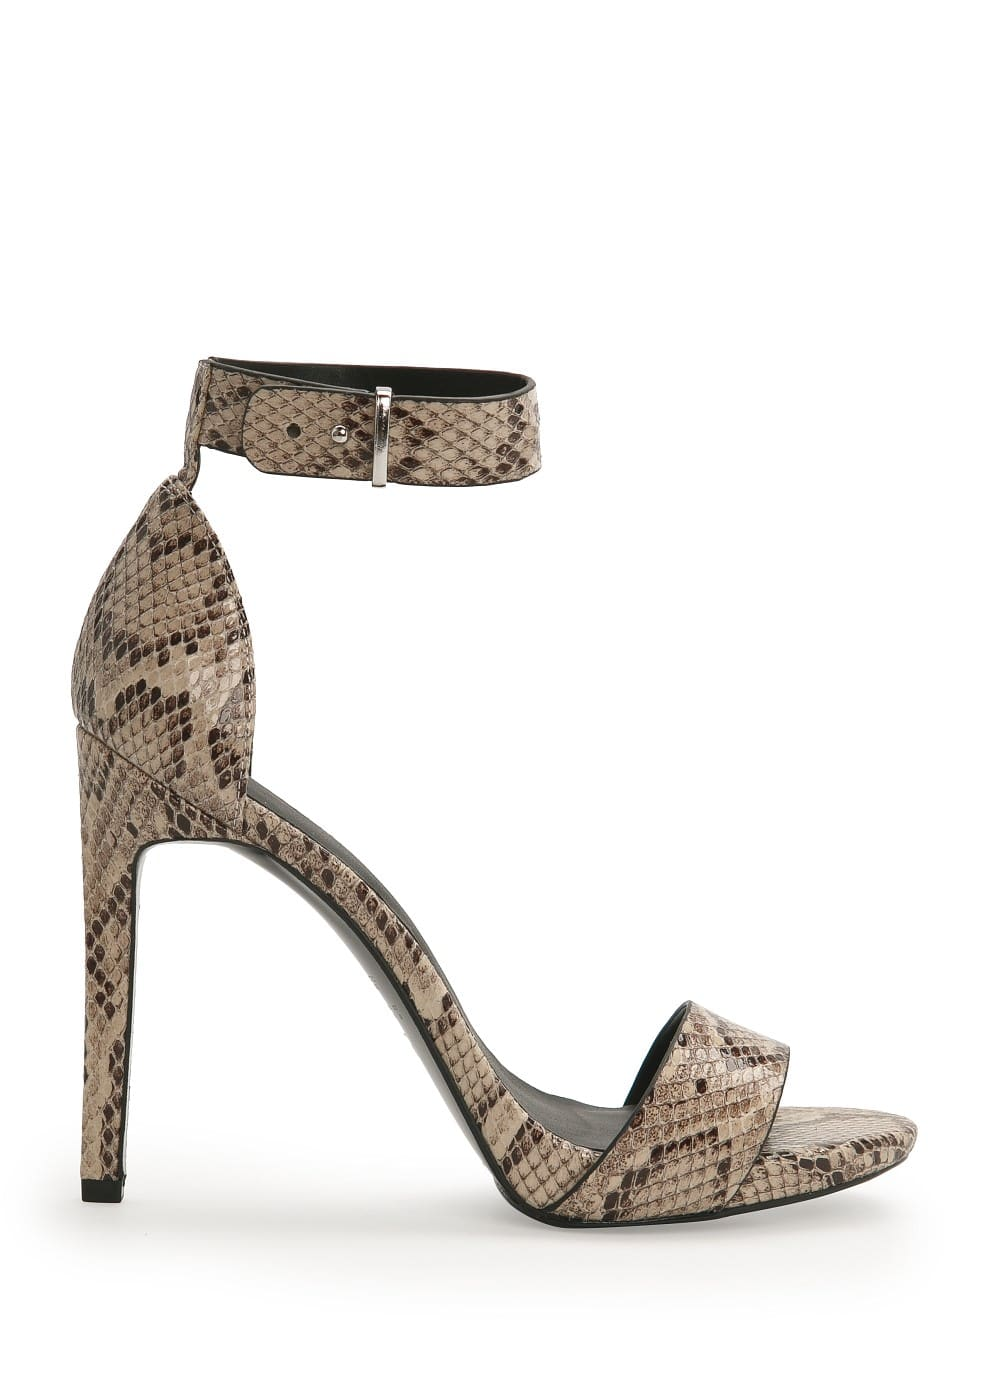 Metallic appliqué ankle-cuff sandal